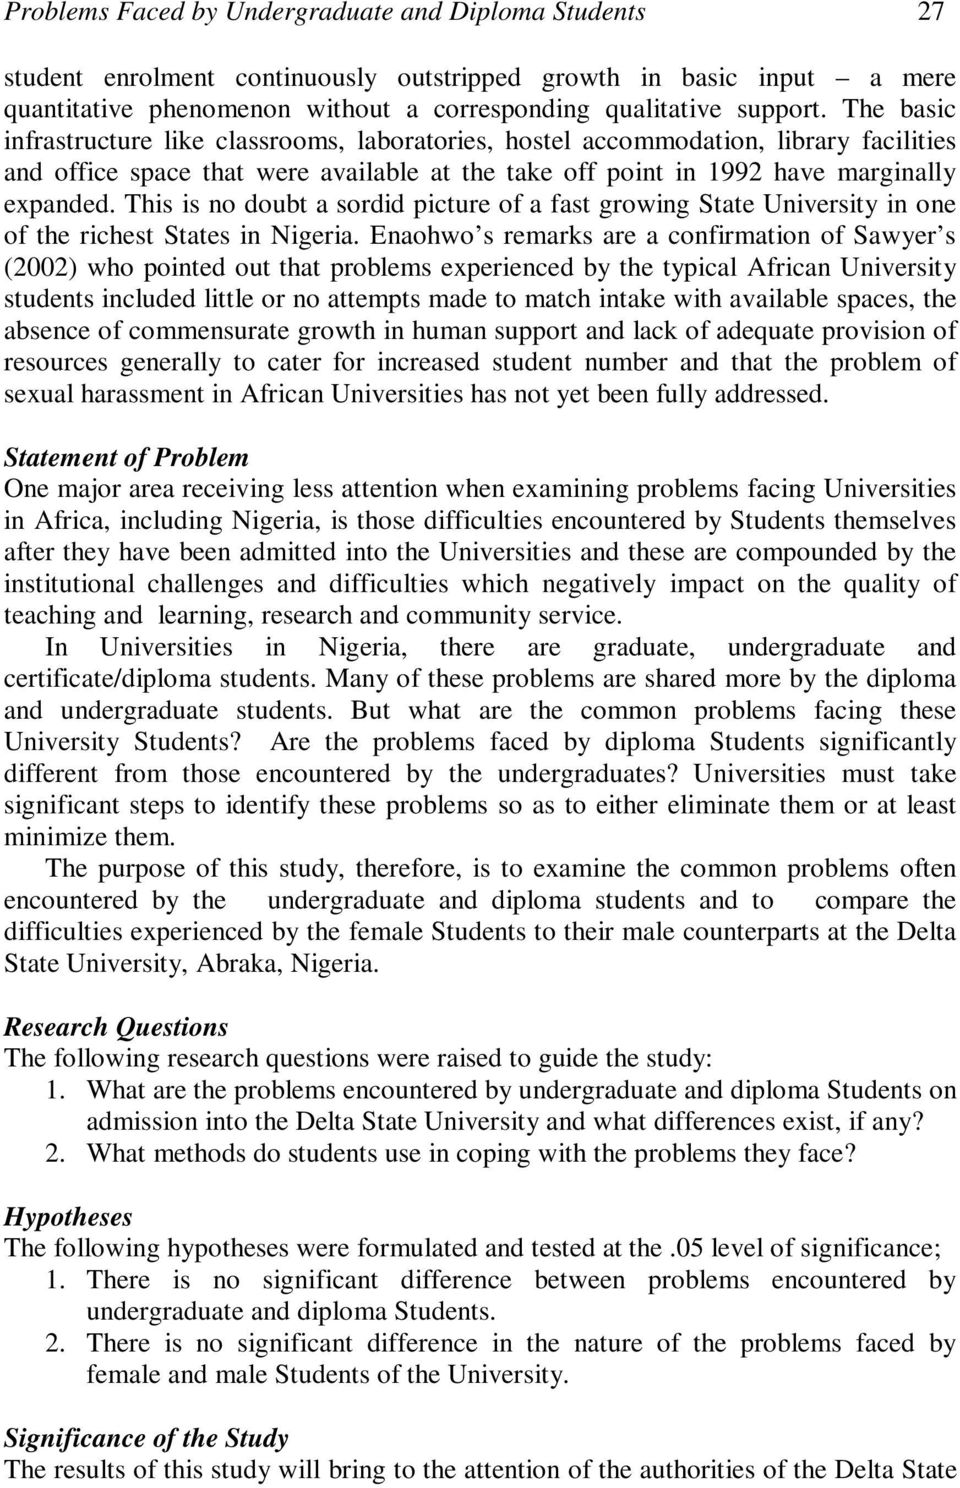 """problems faced by college students Challenges in college there are many """"issues"""" commonly experienced by students in college that can sometimes pose major challenges to study, play, socializing, and living in the following, some of these challenges are identified and described, and suggestions are provided for further exploring or managing them."""